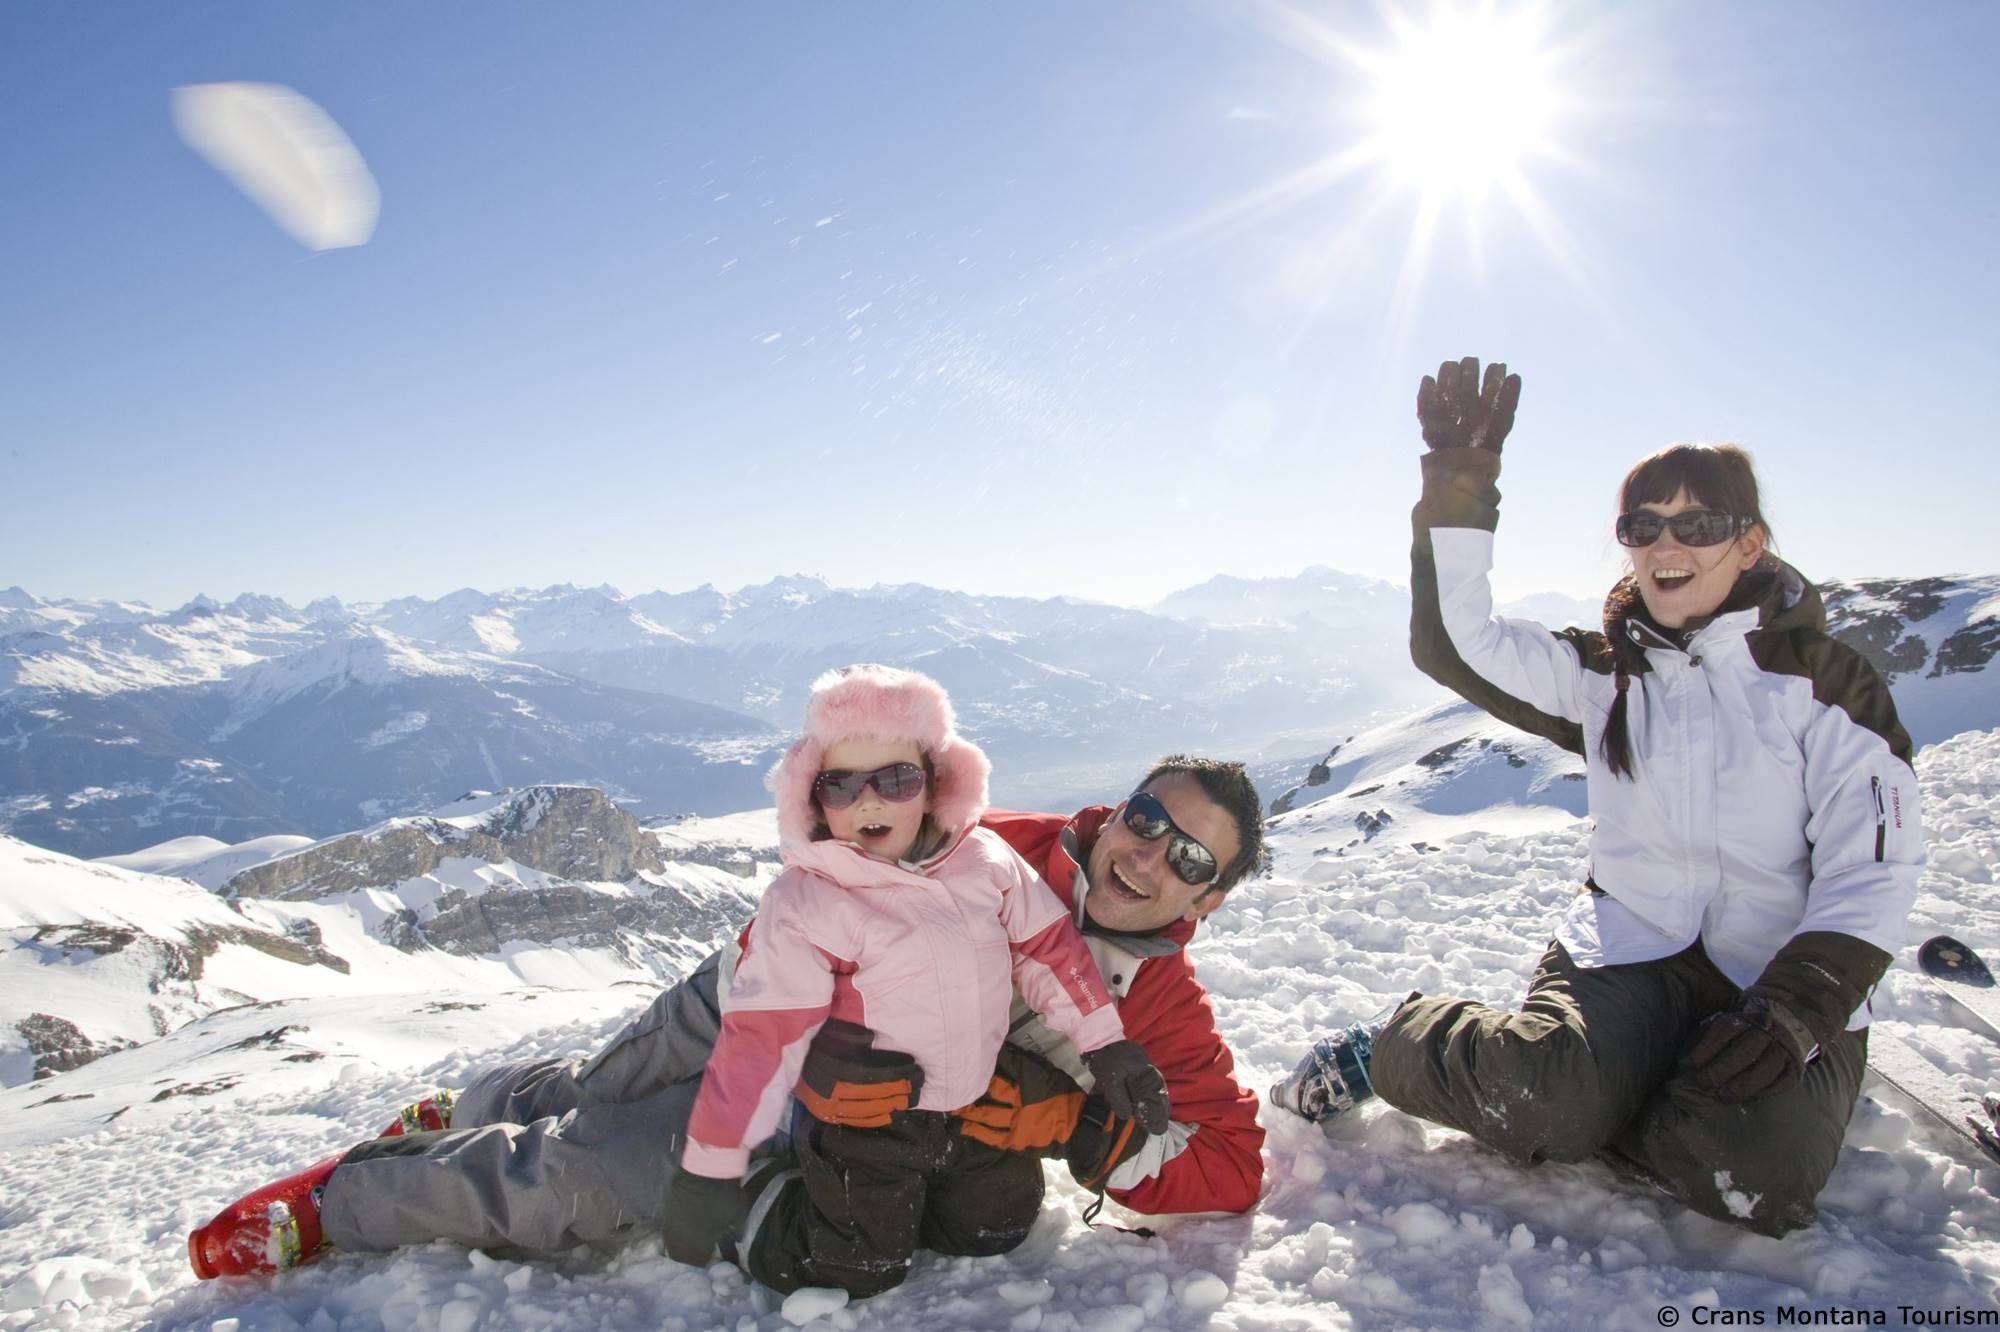 Crans Montana Ski Holiday